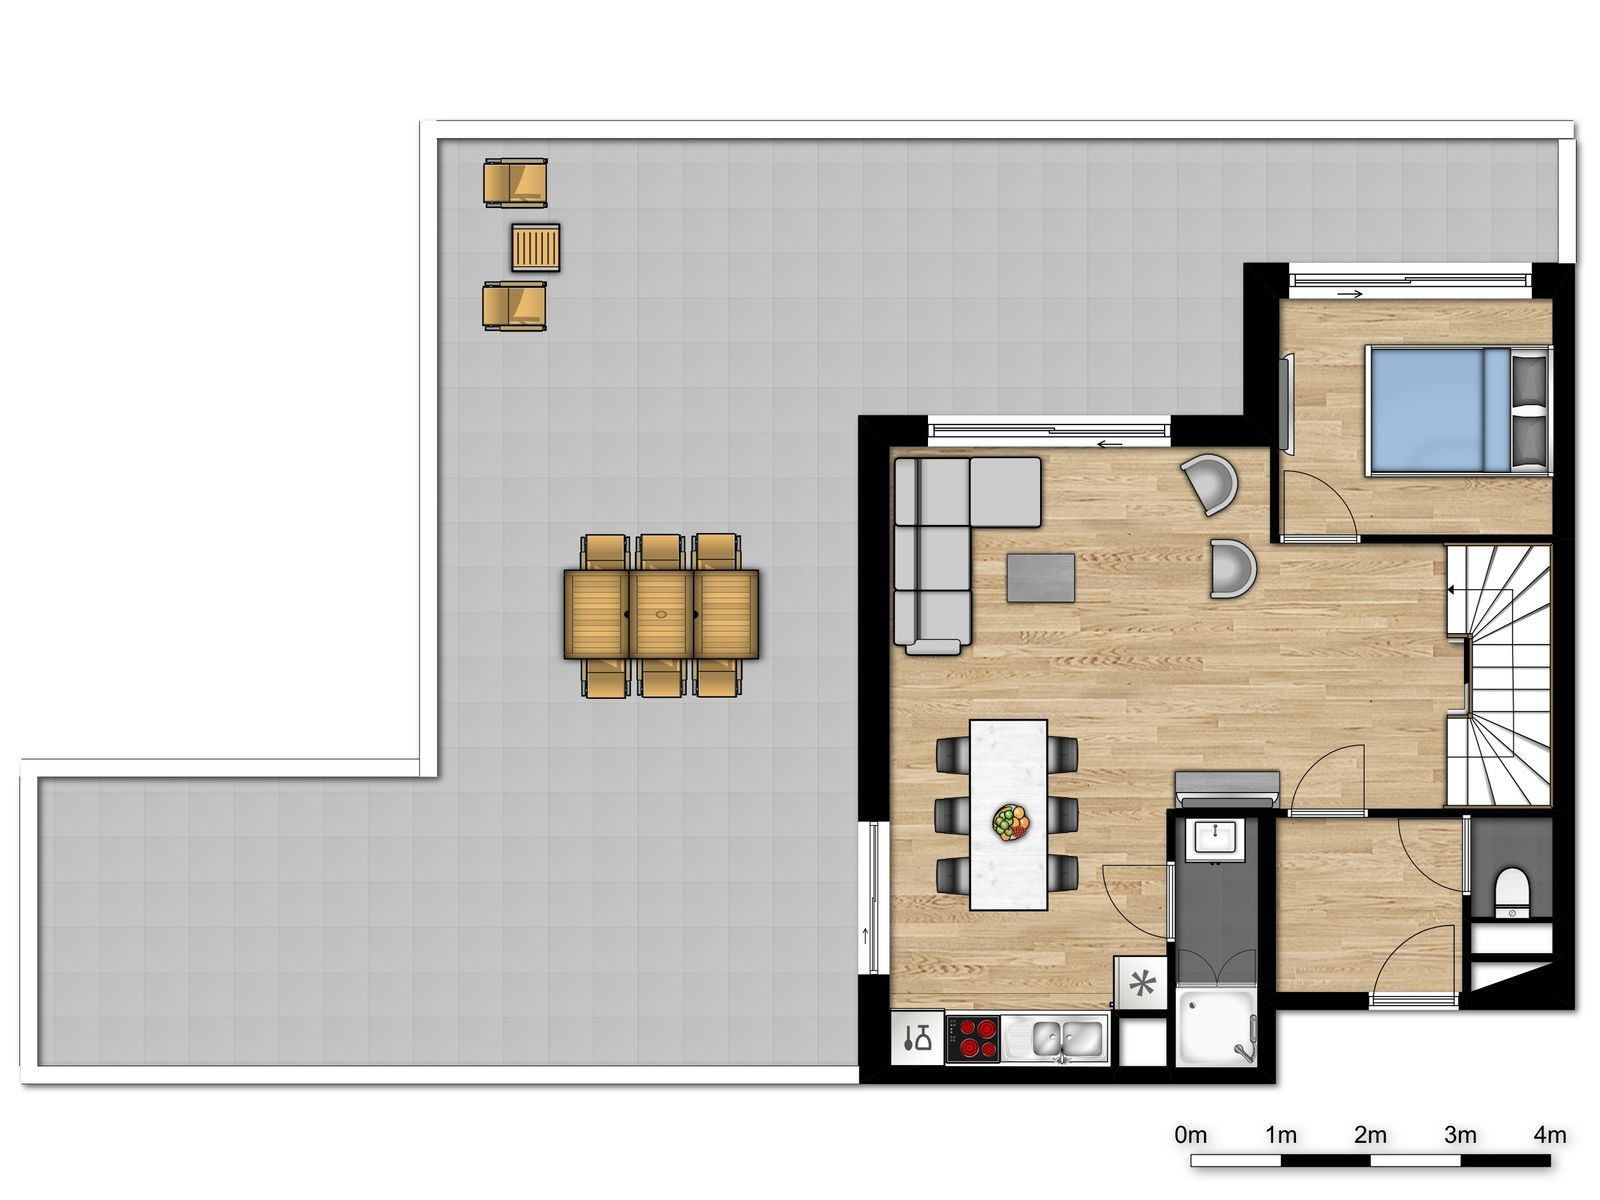 New premium penthouse for 6 people with 3 bedrooms and spacious terrace